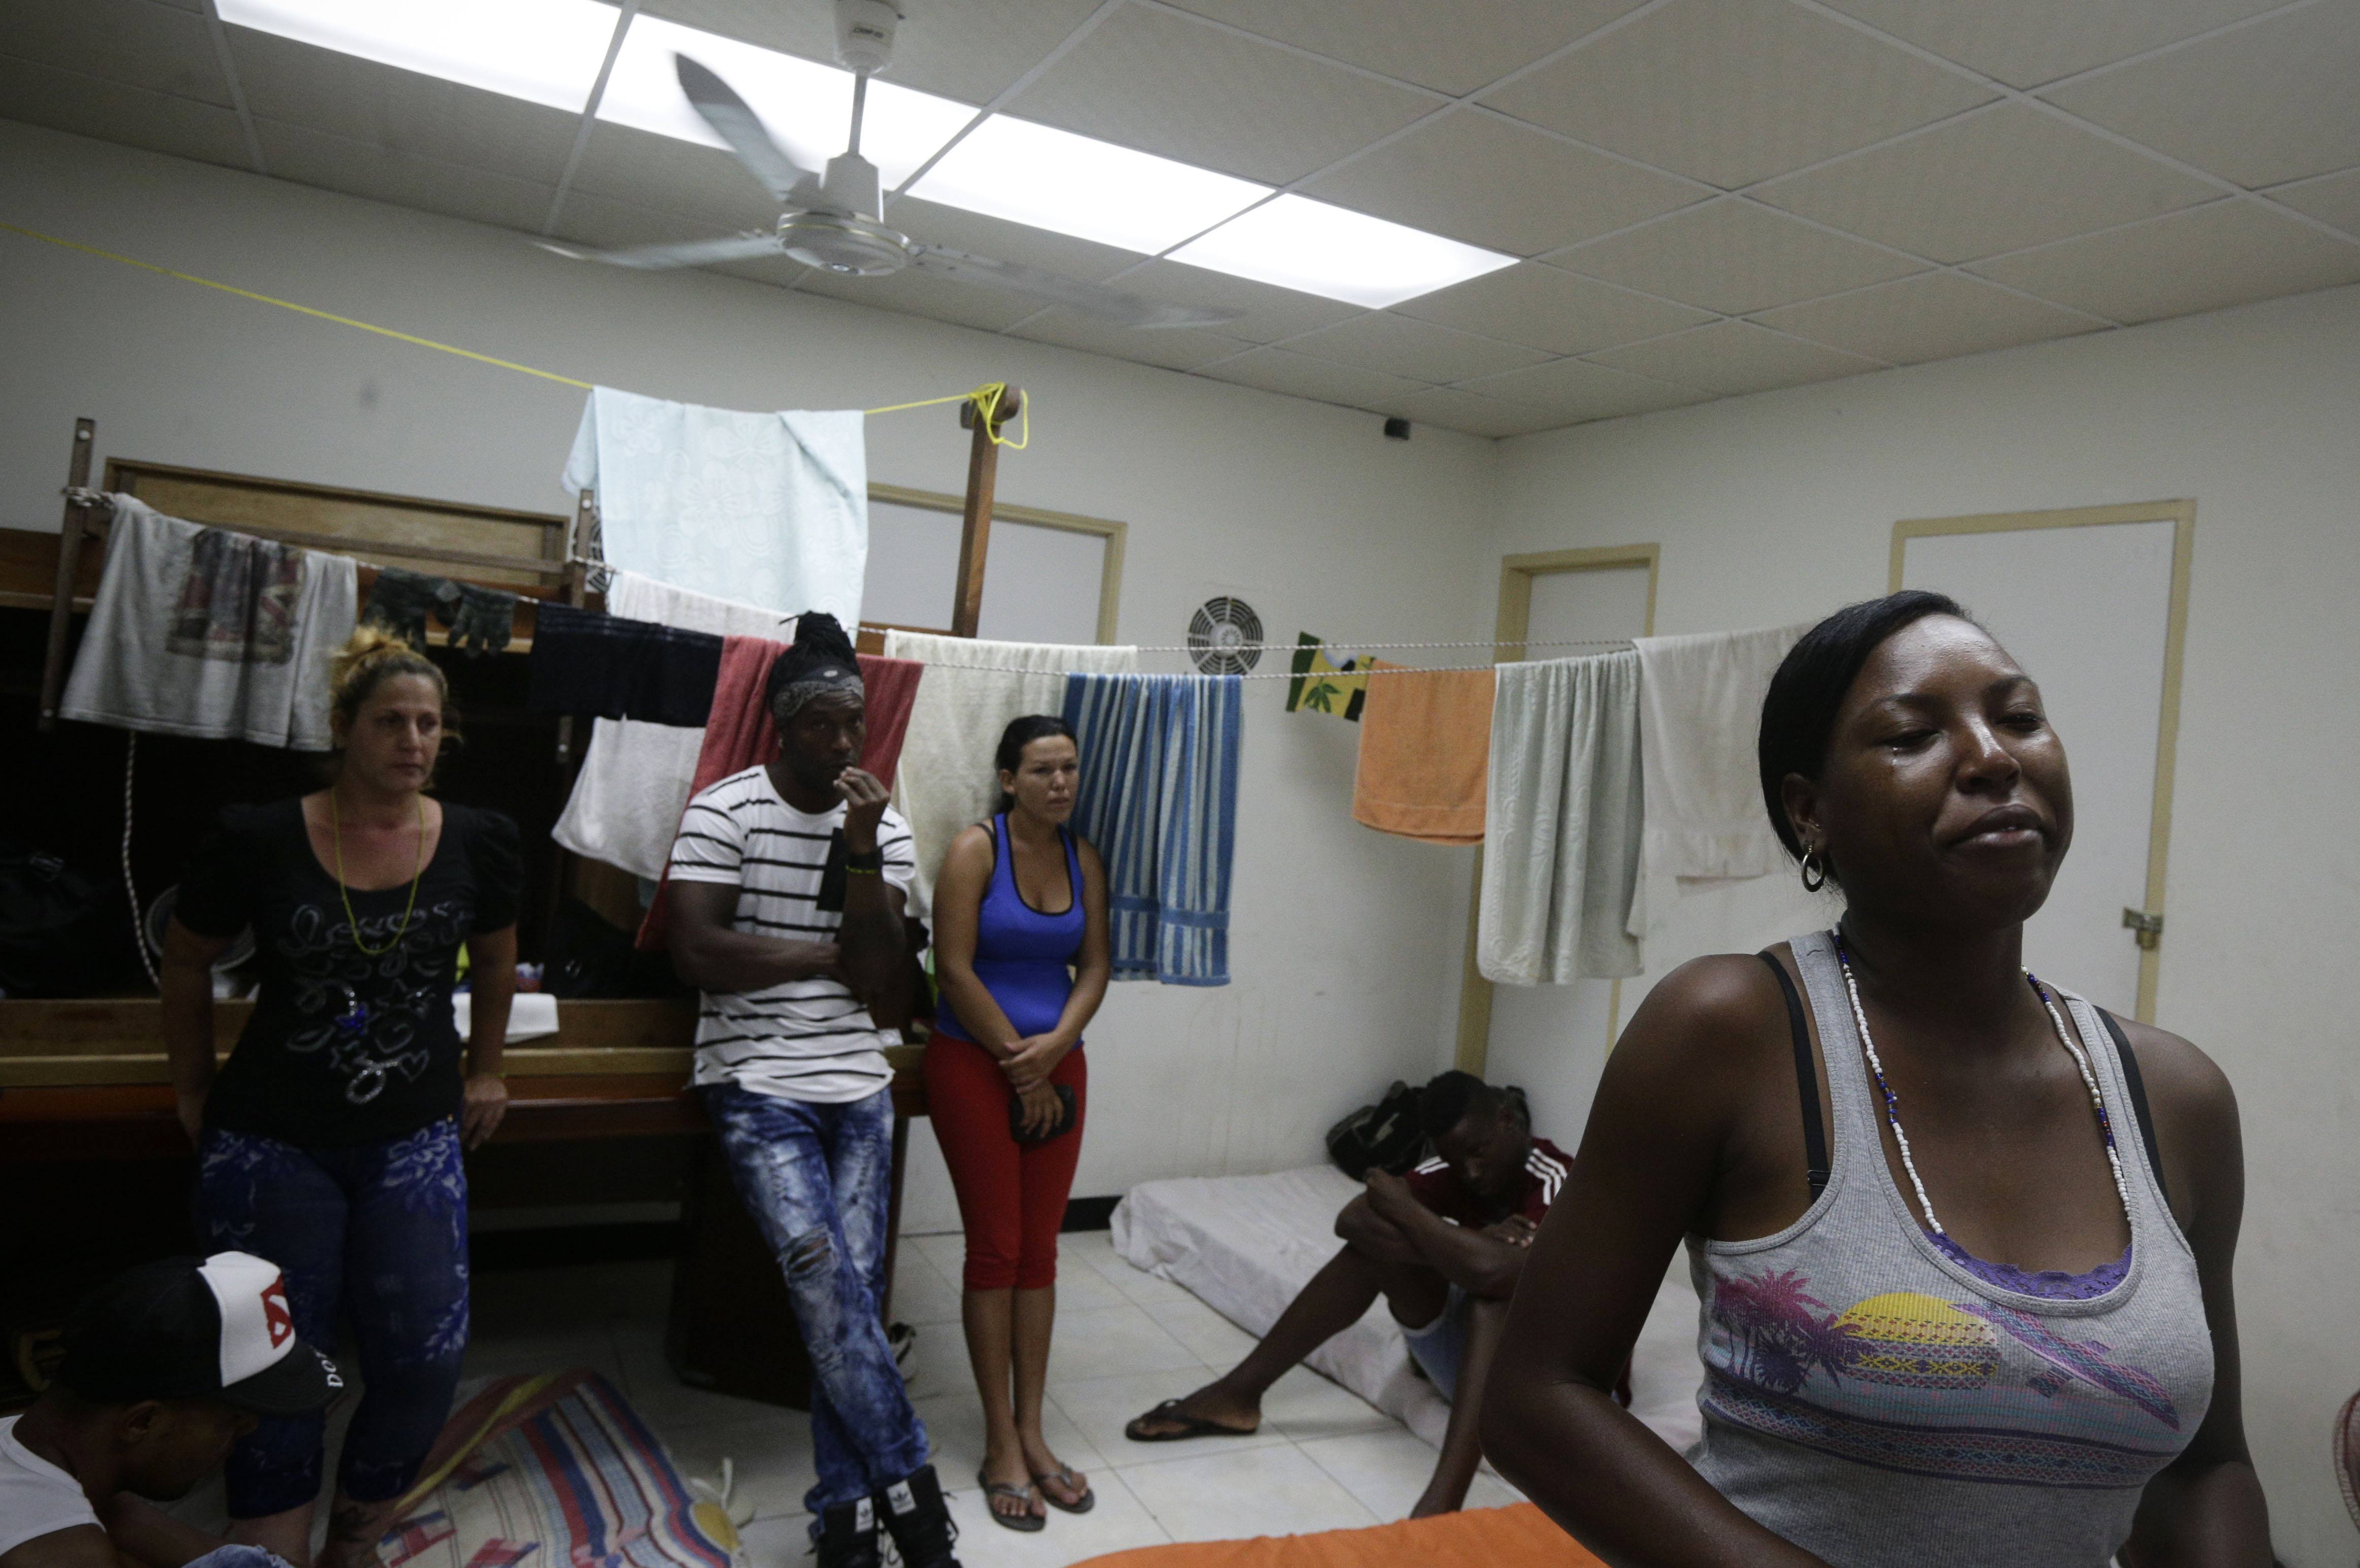 Cuban migrant Yarisel Isac Wilson, 20 (R) cries as she talks about her journey to the U.S. at a migrant shelter in Panama City on Jan. 12, 2017. (AP Photo/Arnulfo Franco)